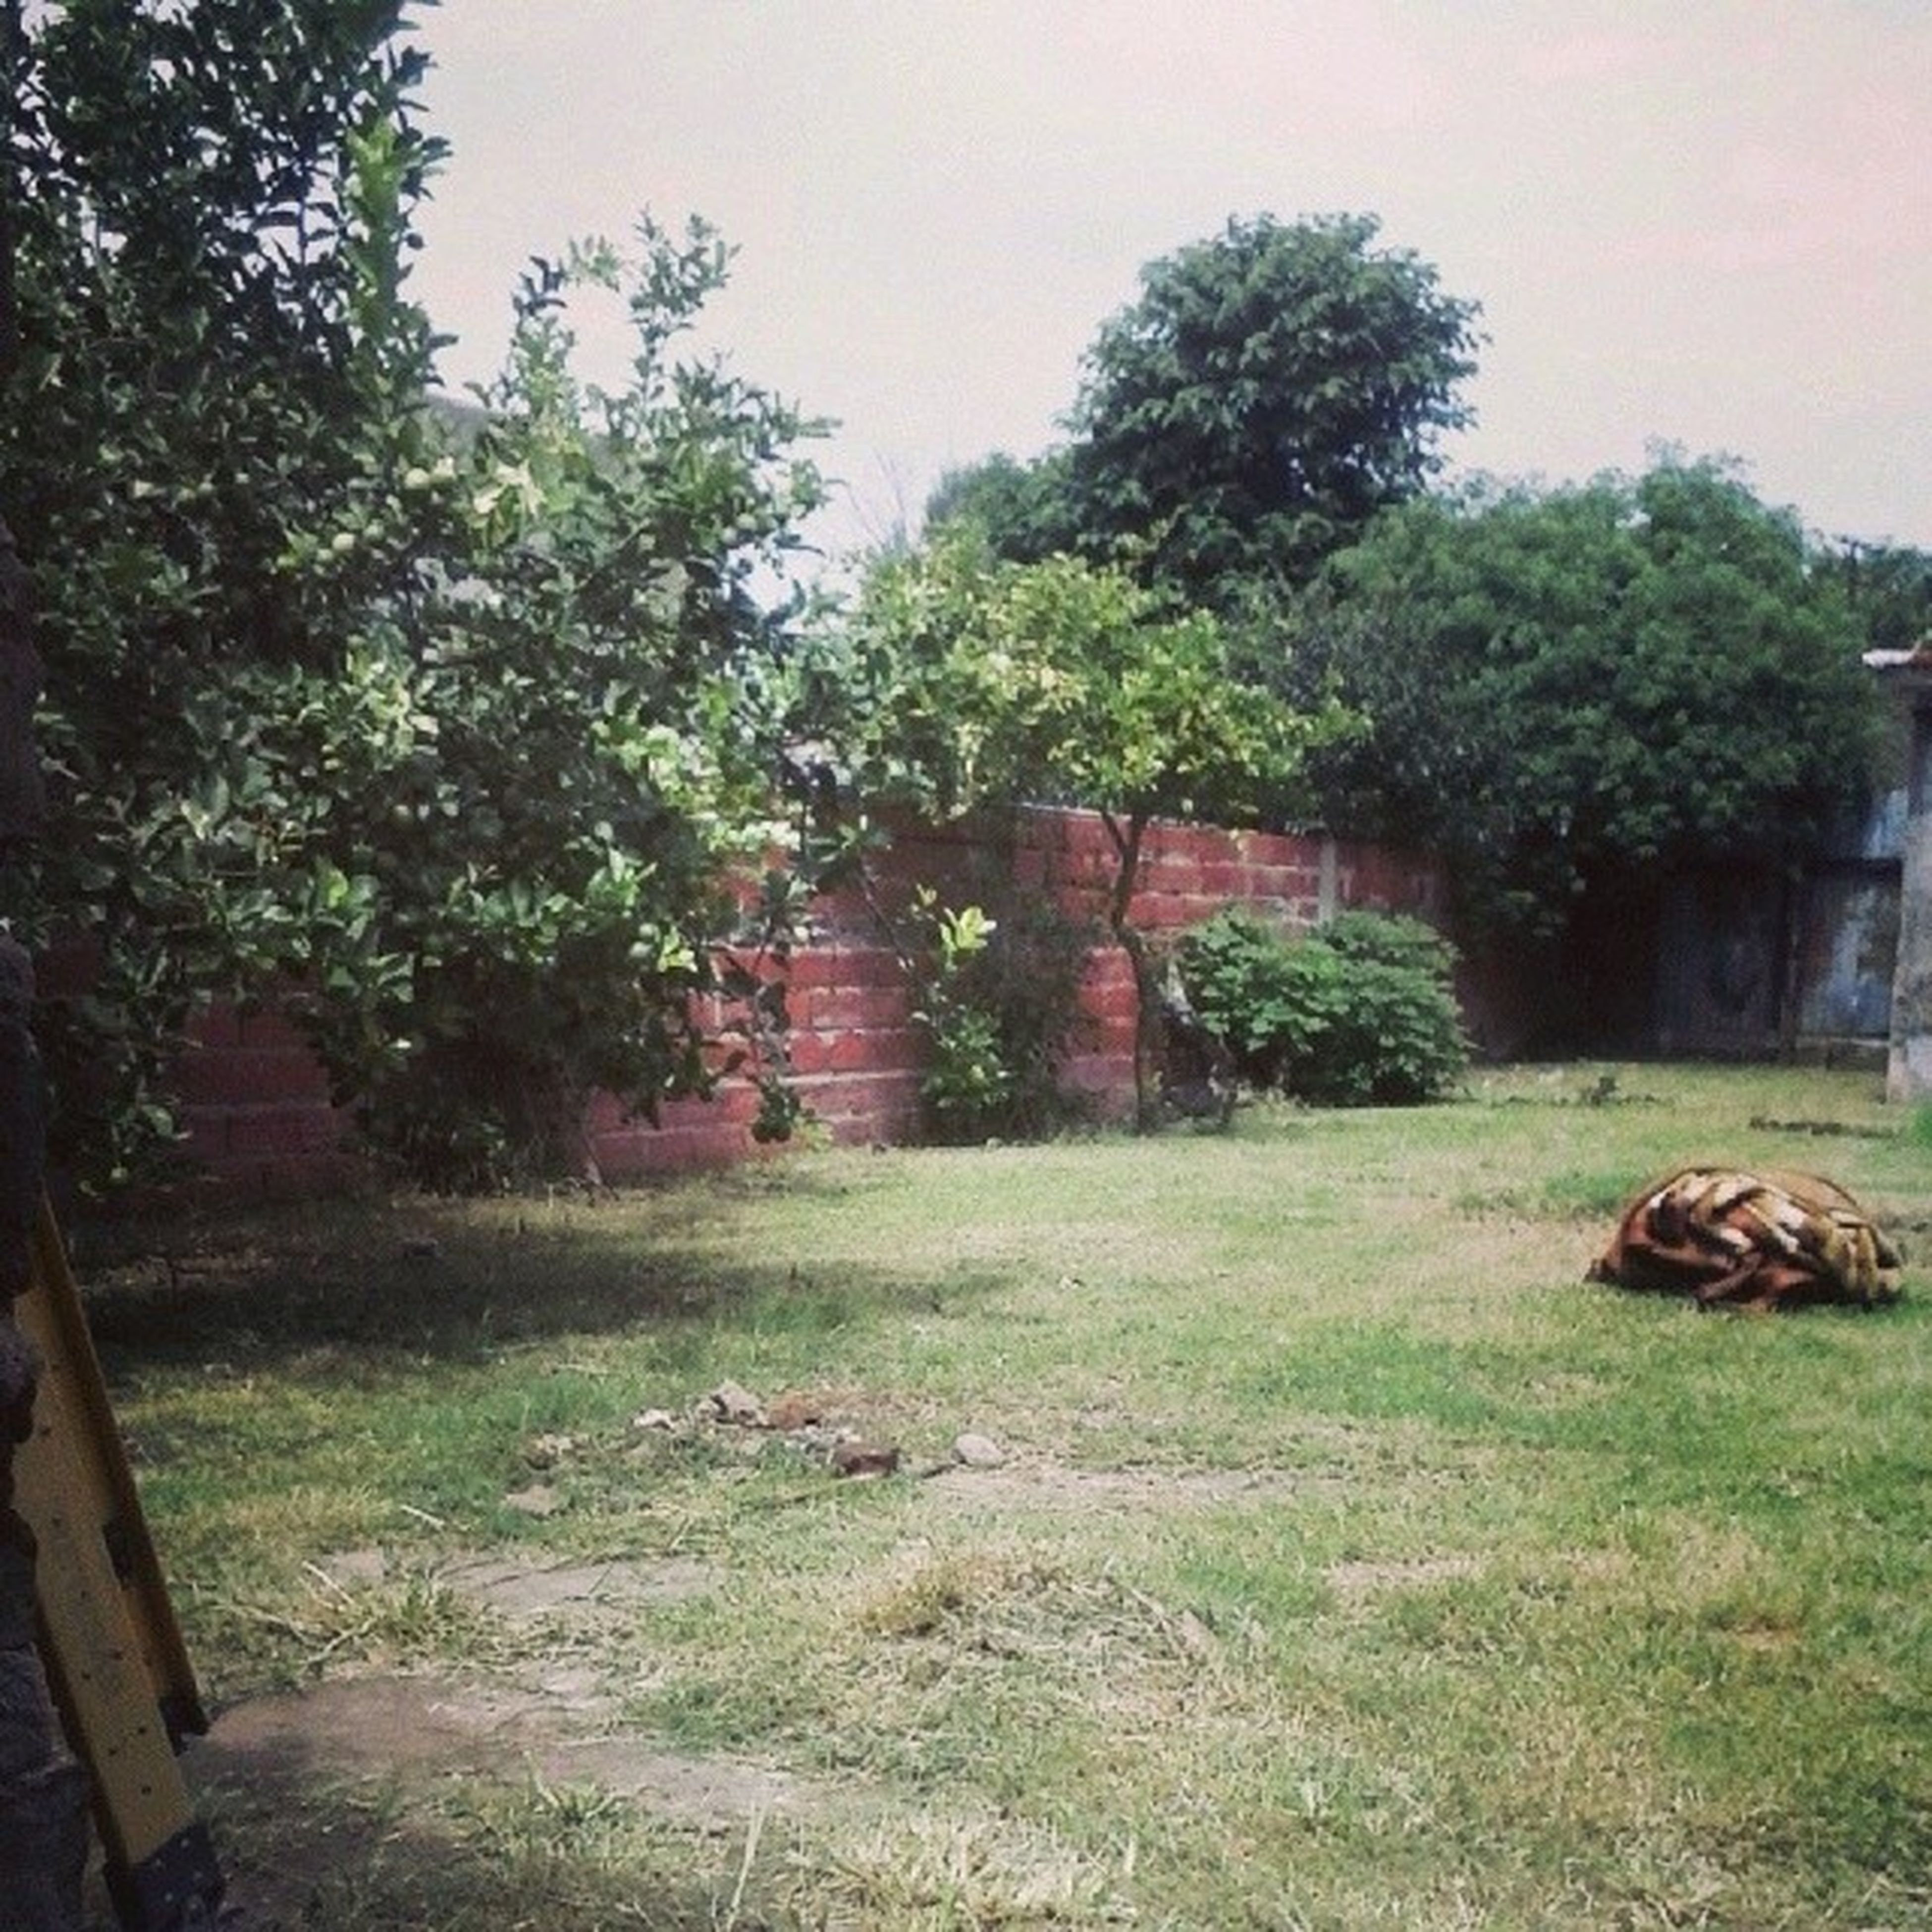 tree, grass, built structure, growth, green color, architecture, plant, house, field, nature, tranquility, grassy, building exterior, day, no people, abandoned, outdoors, tranquil scene, landscape, wood - material